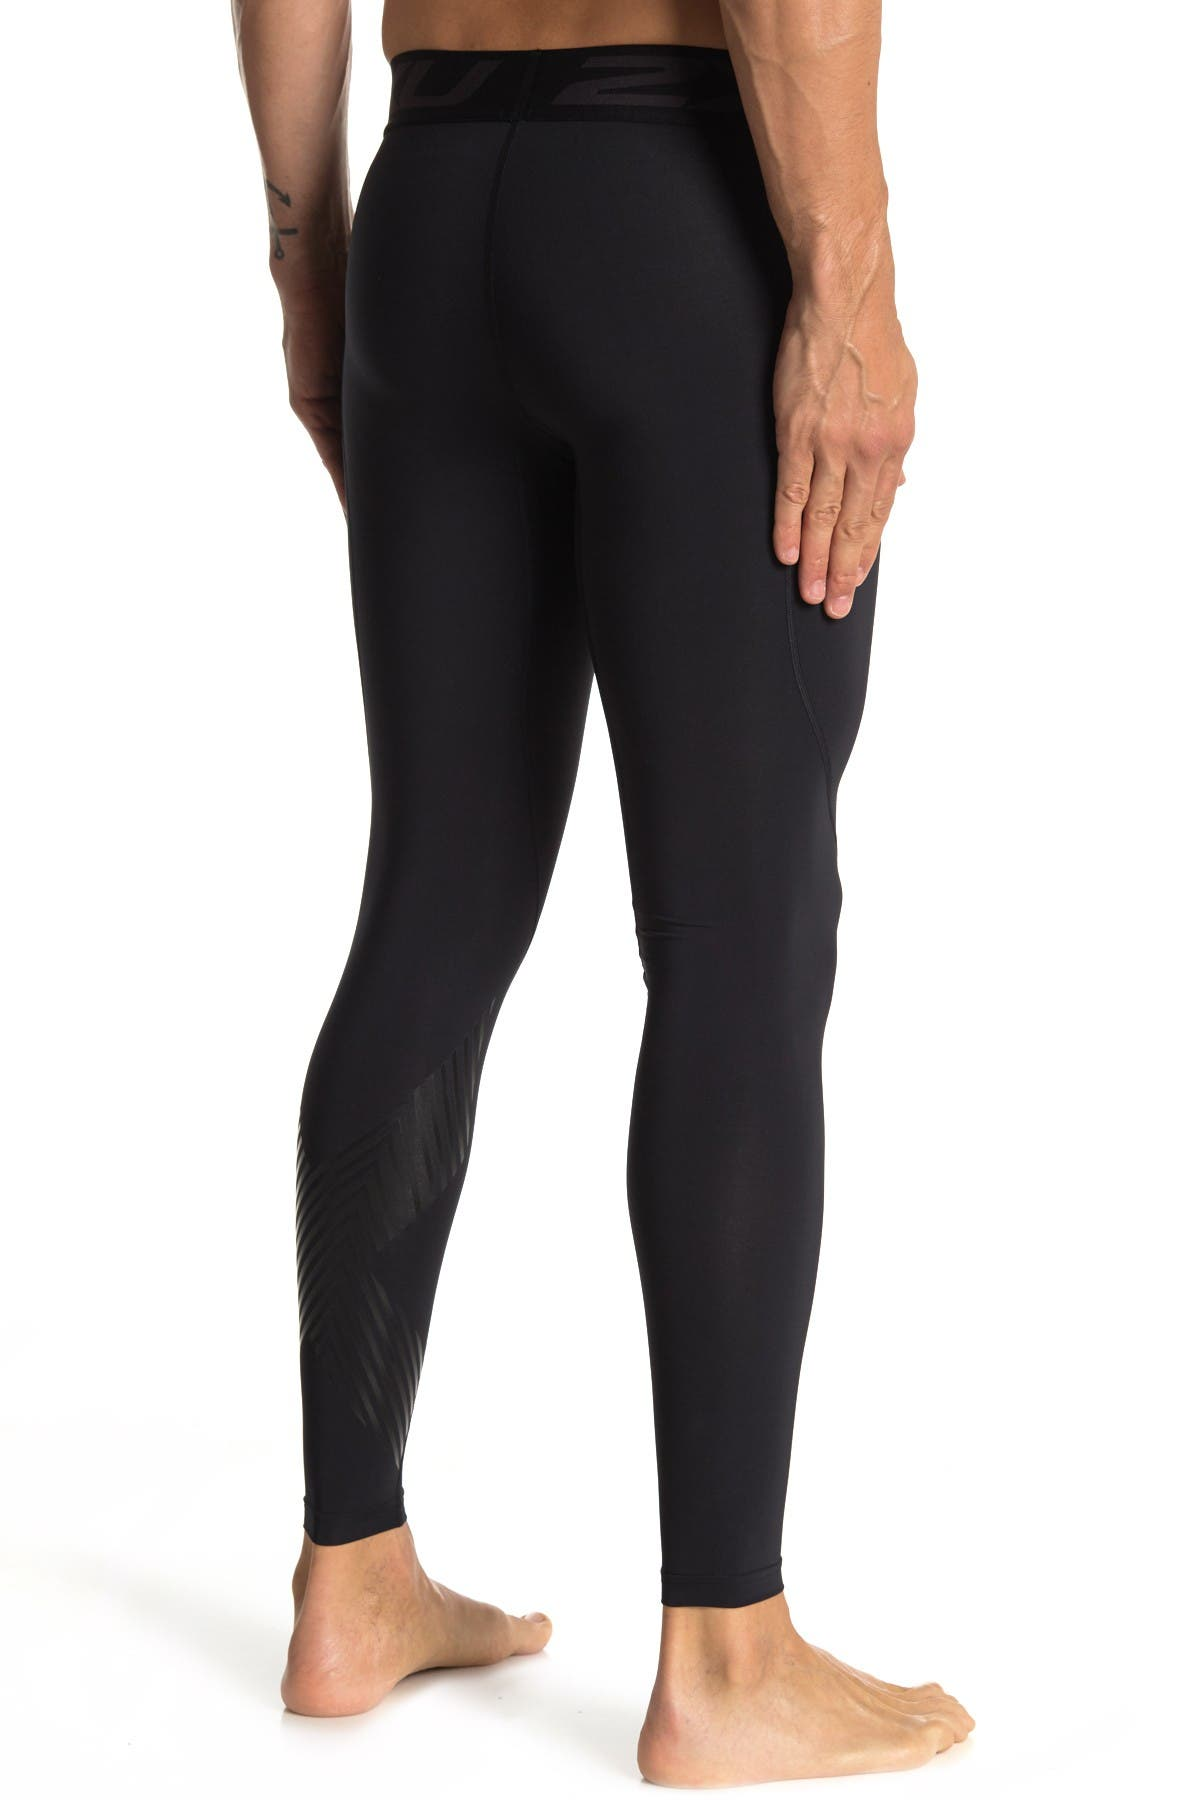 Image of 2XU Accelerate Compression Tights